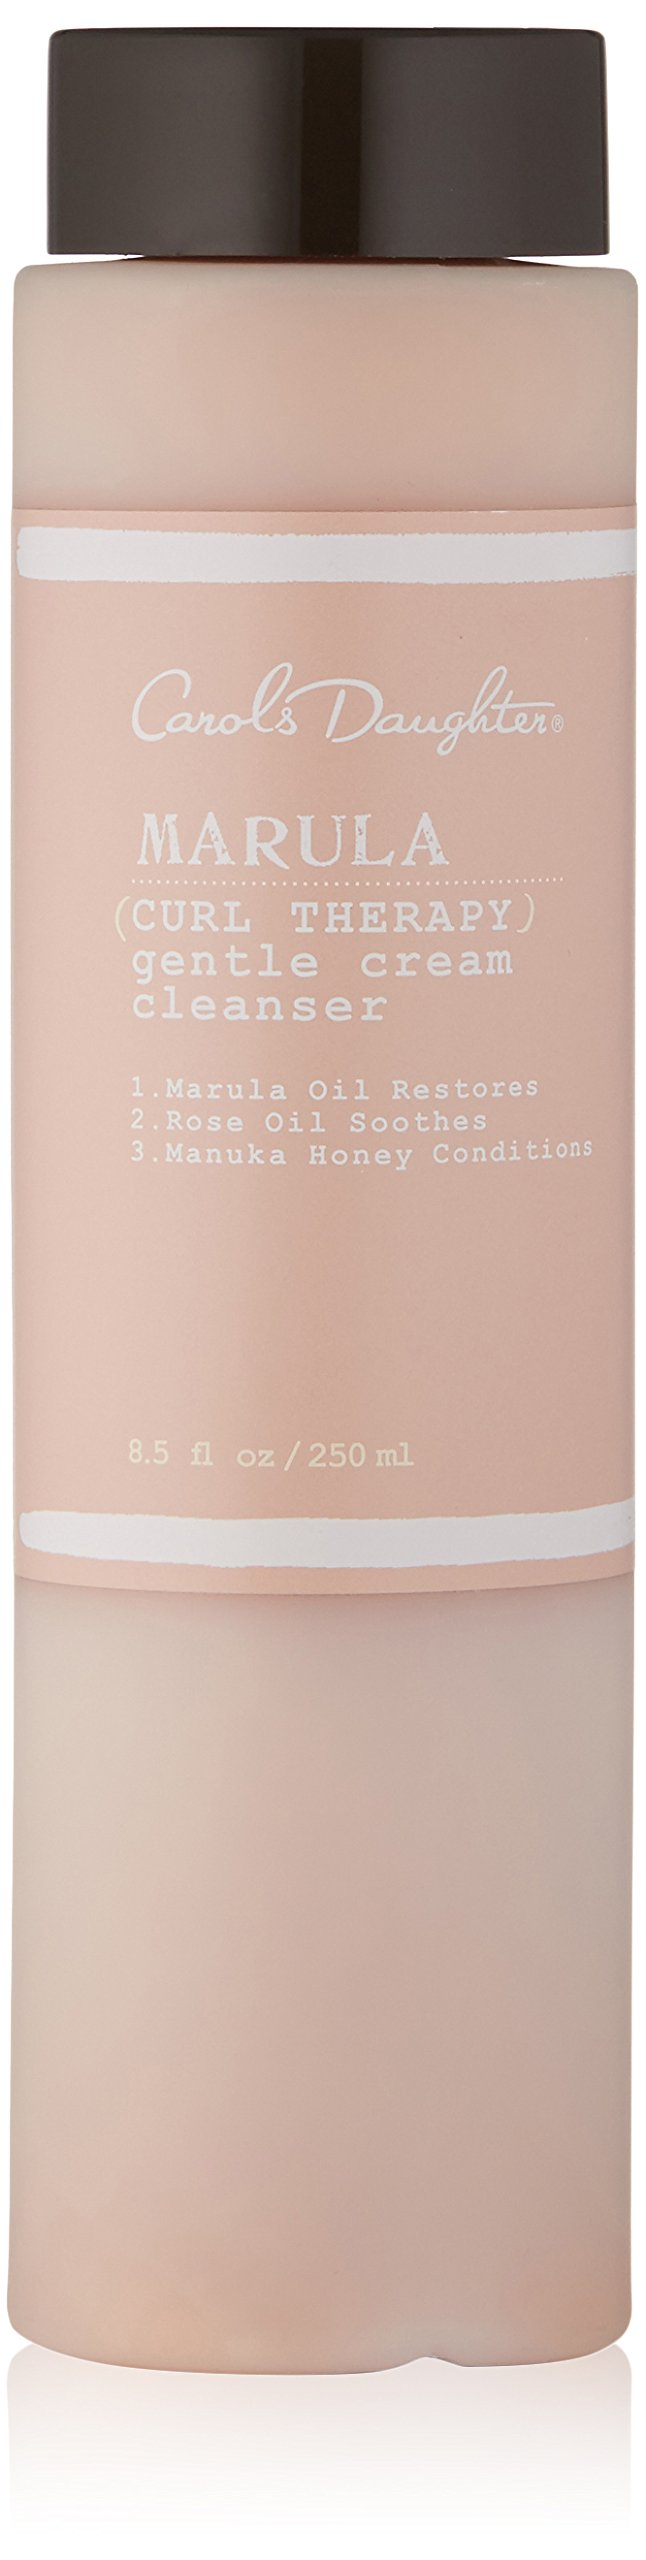 Carol's Daughter Marula Curl Therapy Gentle Cream Cleanser